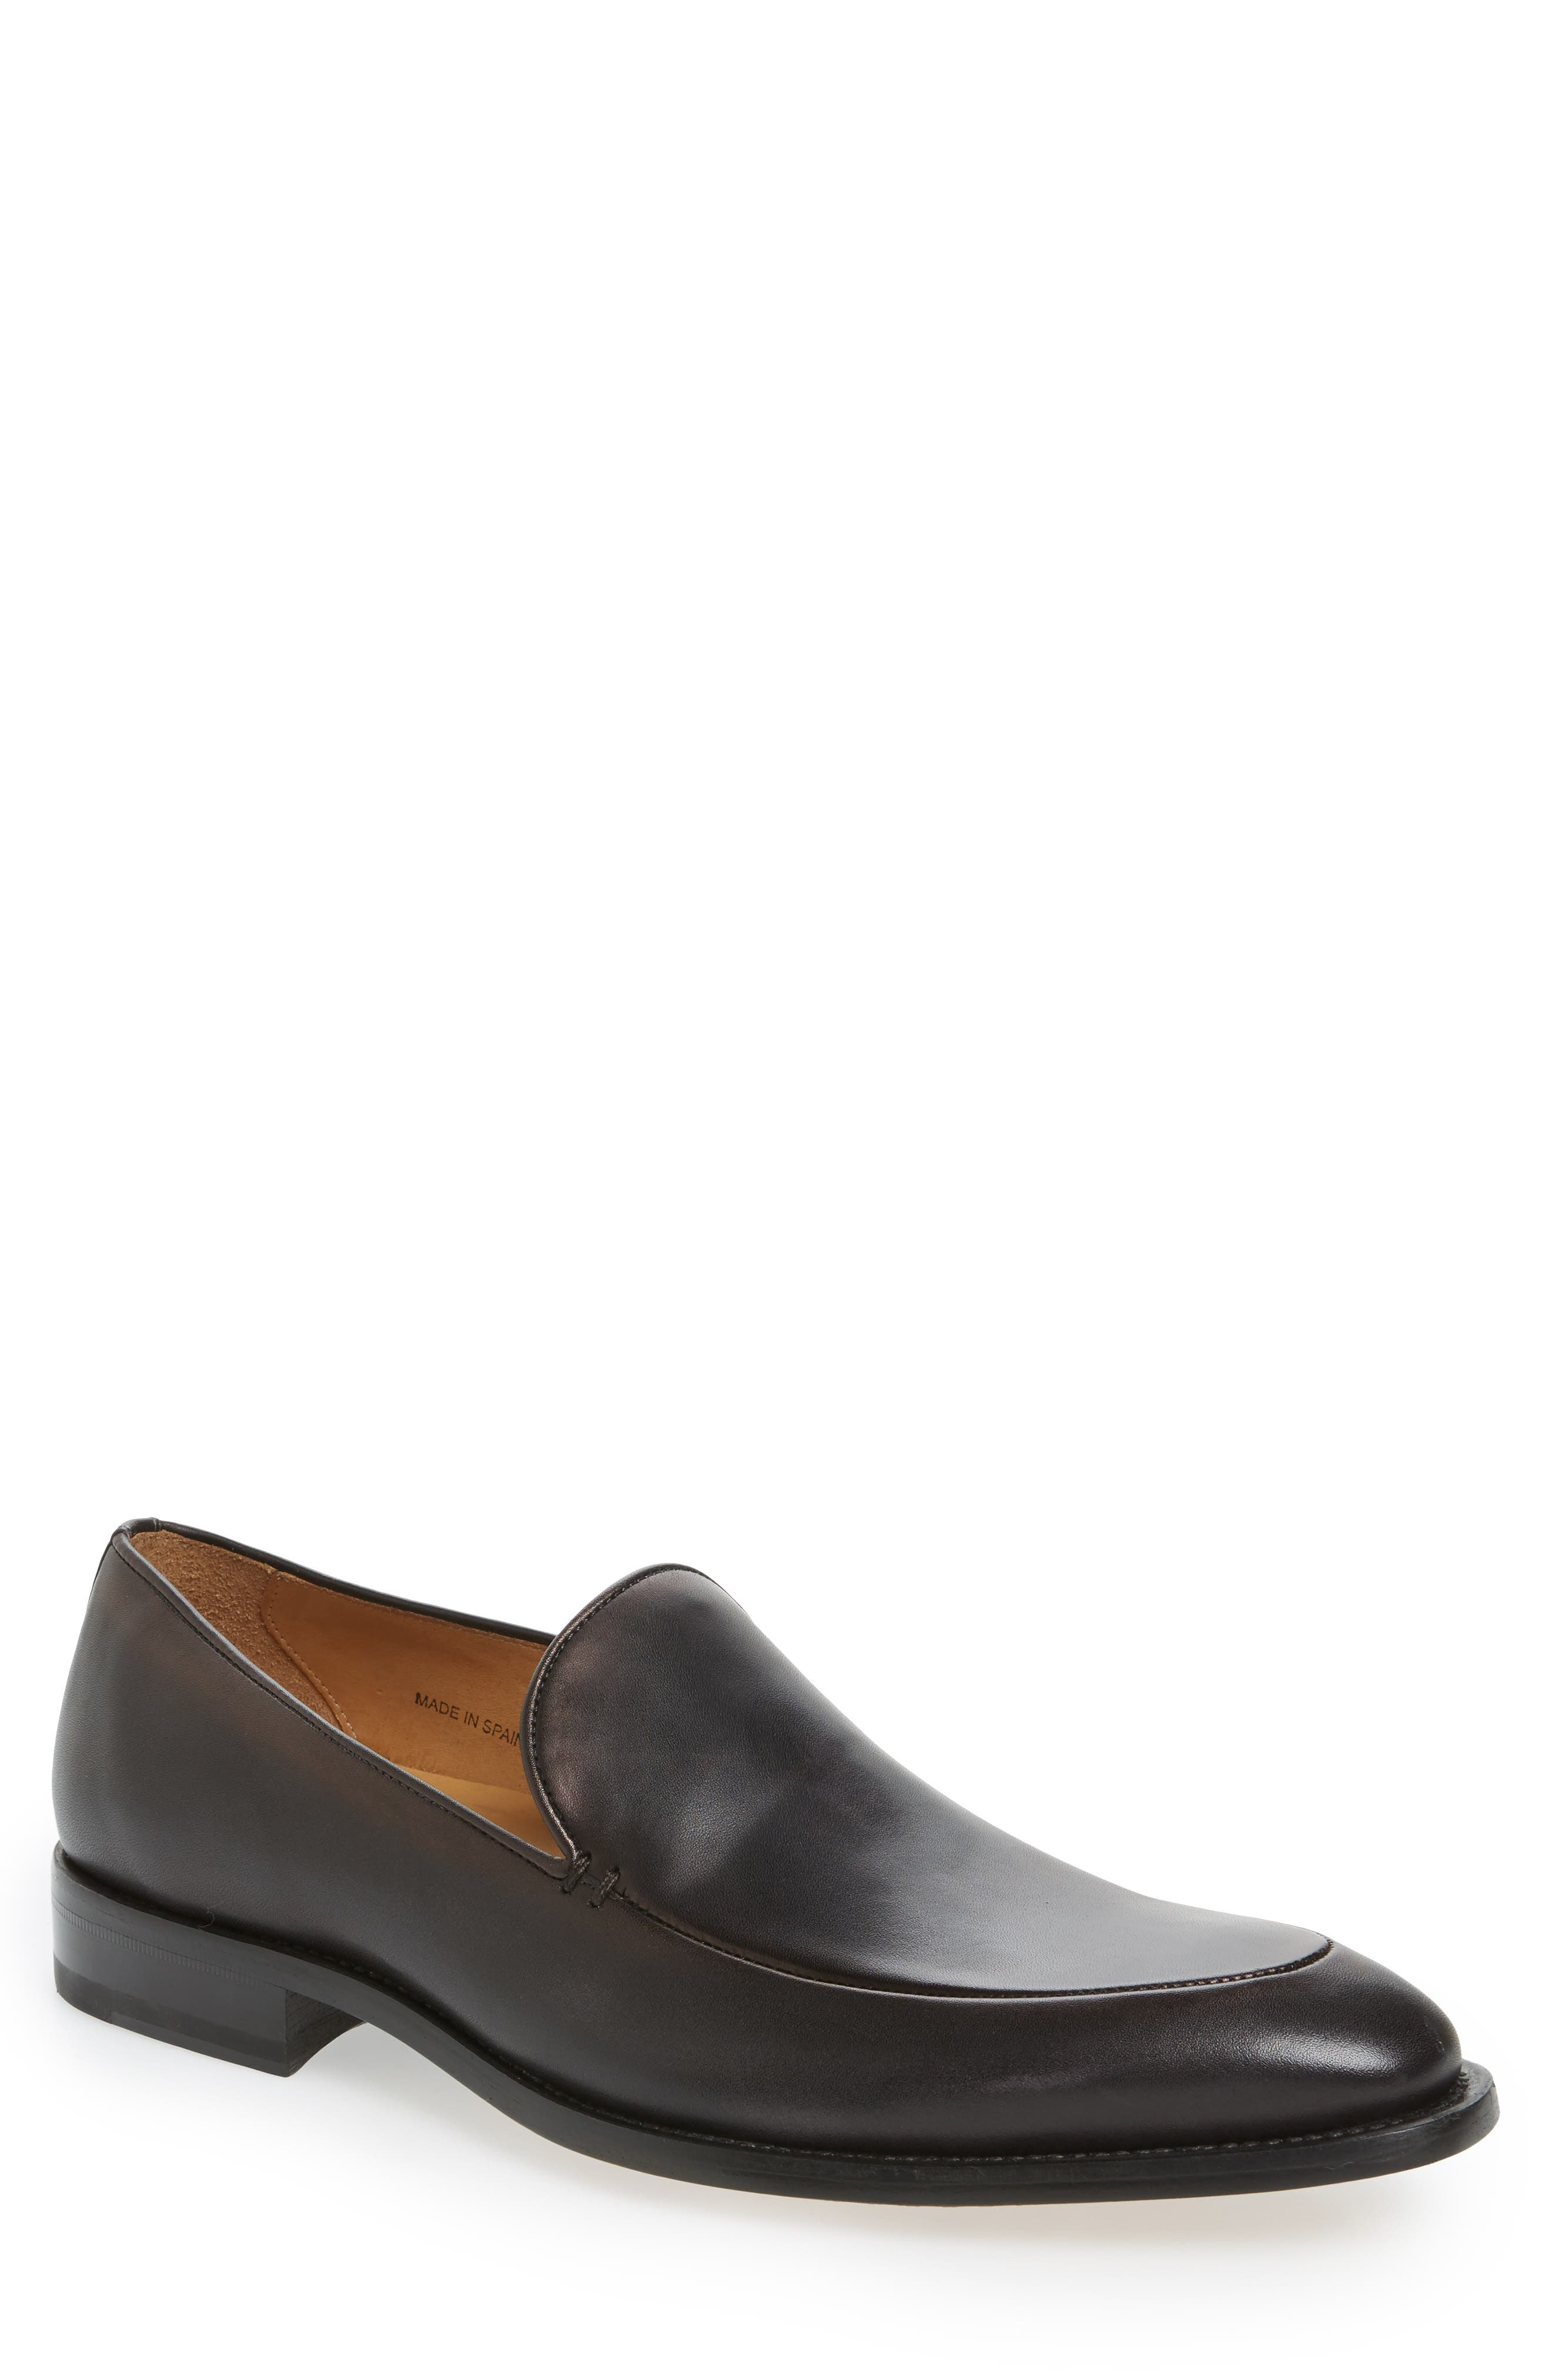 Strauss Venetian Loafer,                             Main thumbnail 1, color,                             008